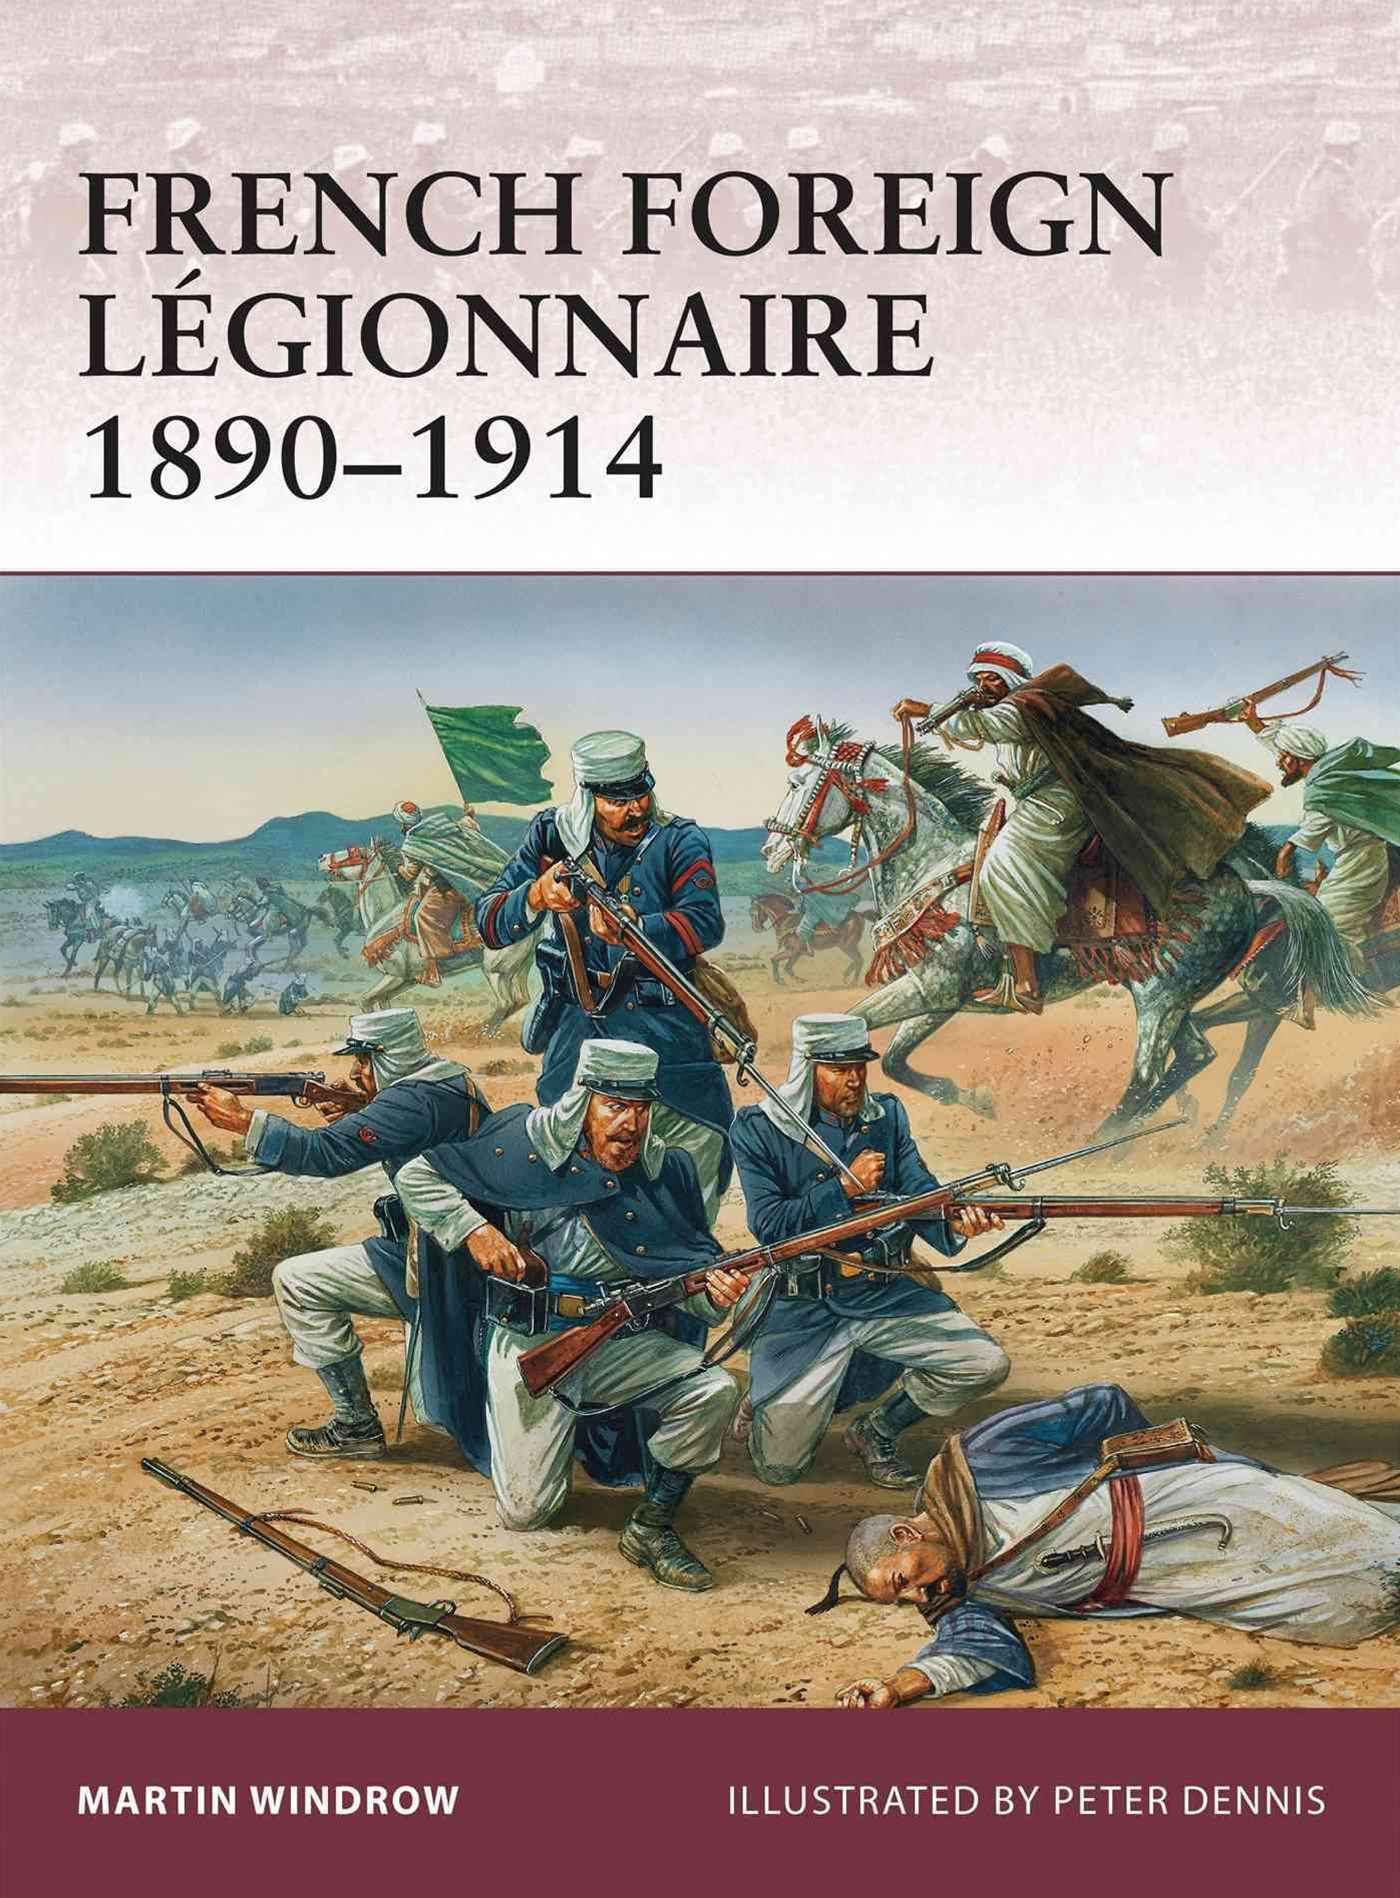 French Foreign L+¬gionnaire, 1890-1914